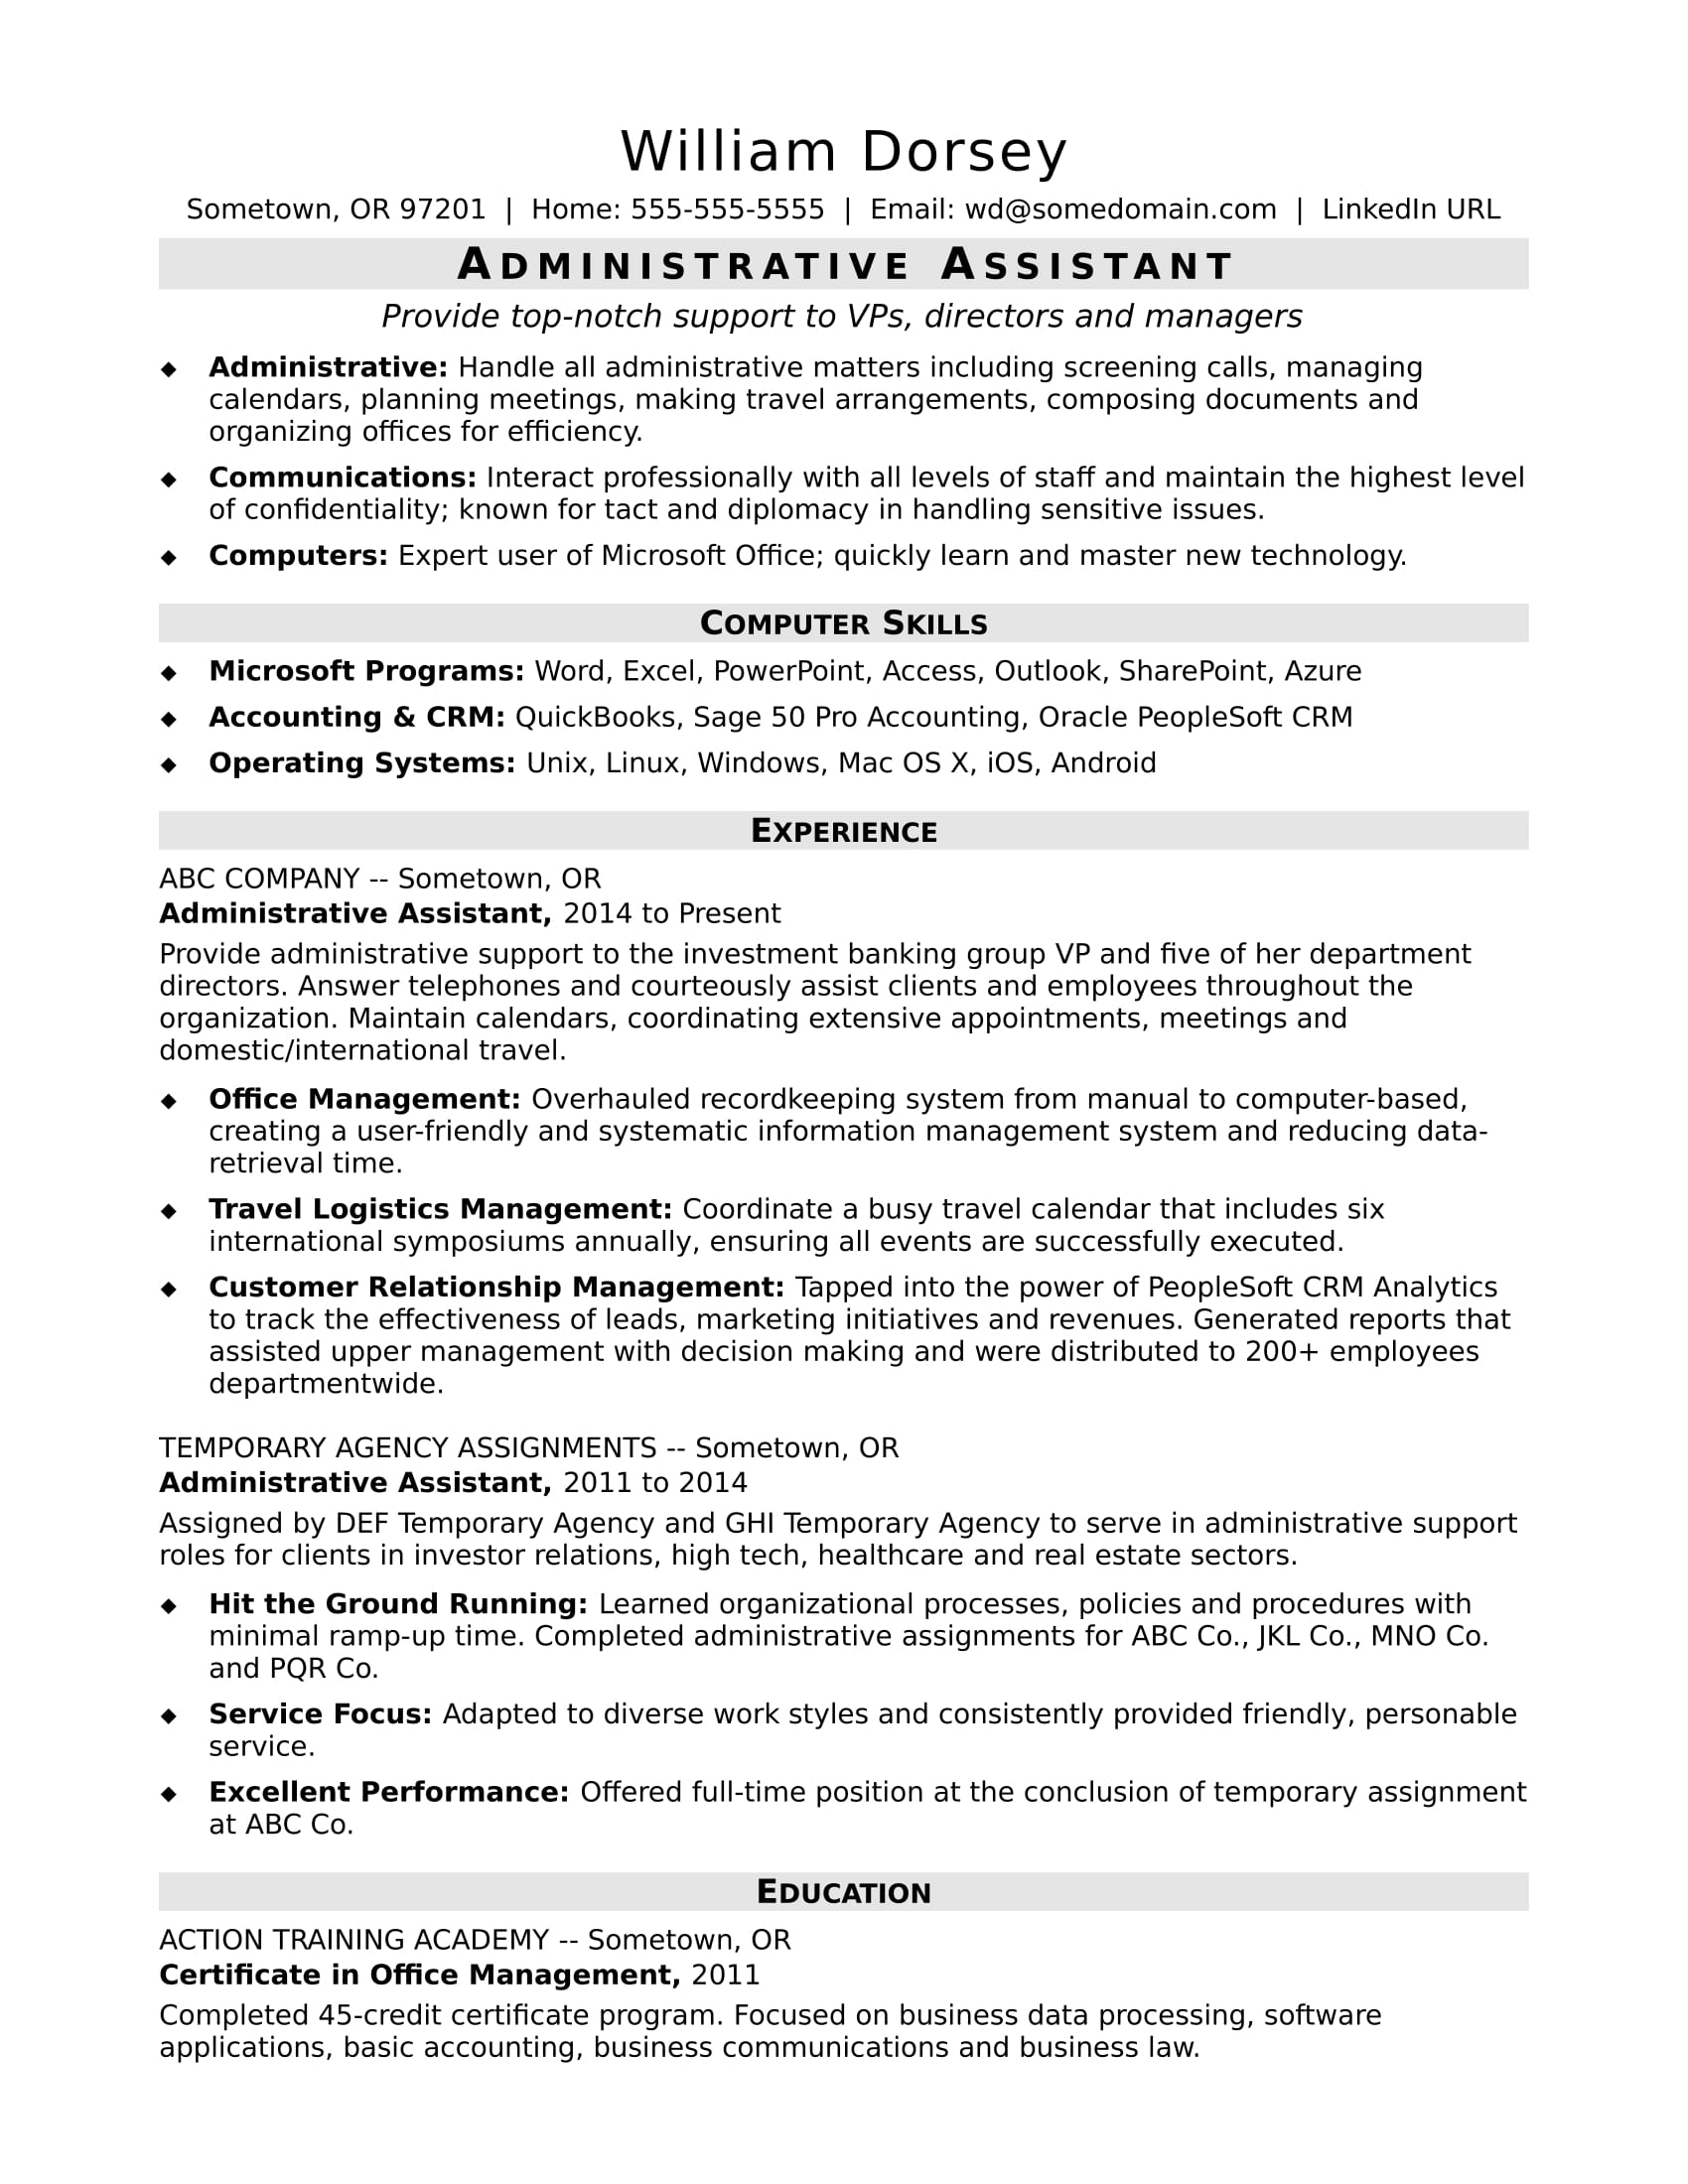 sample resume for a midlevel administrative assistant - Sample Resume Healthcare Administrative Assistant